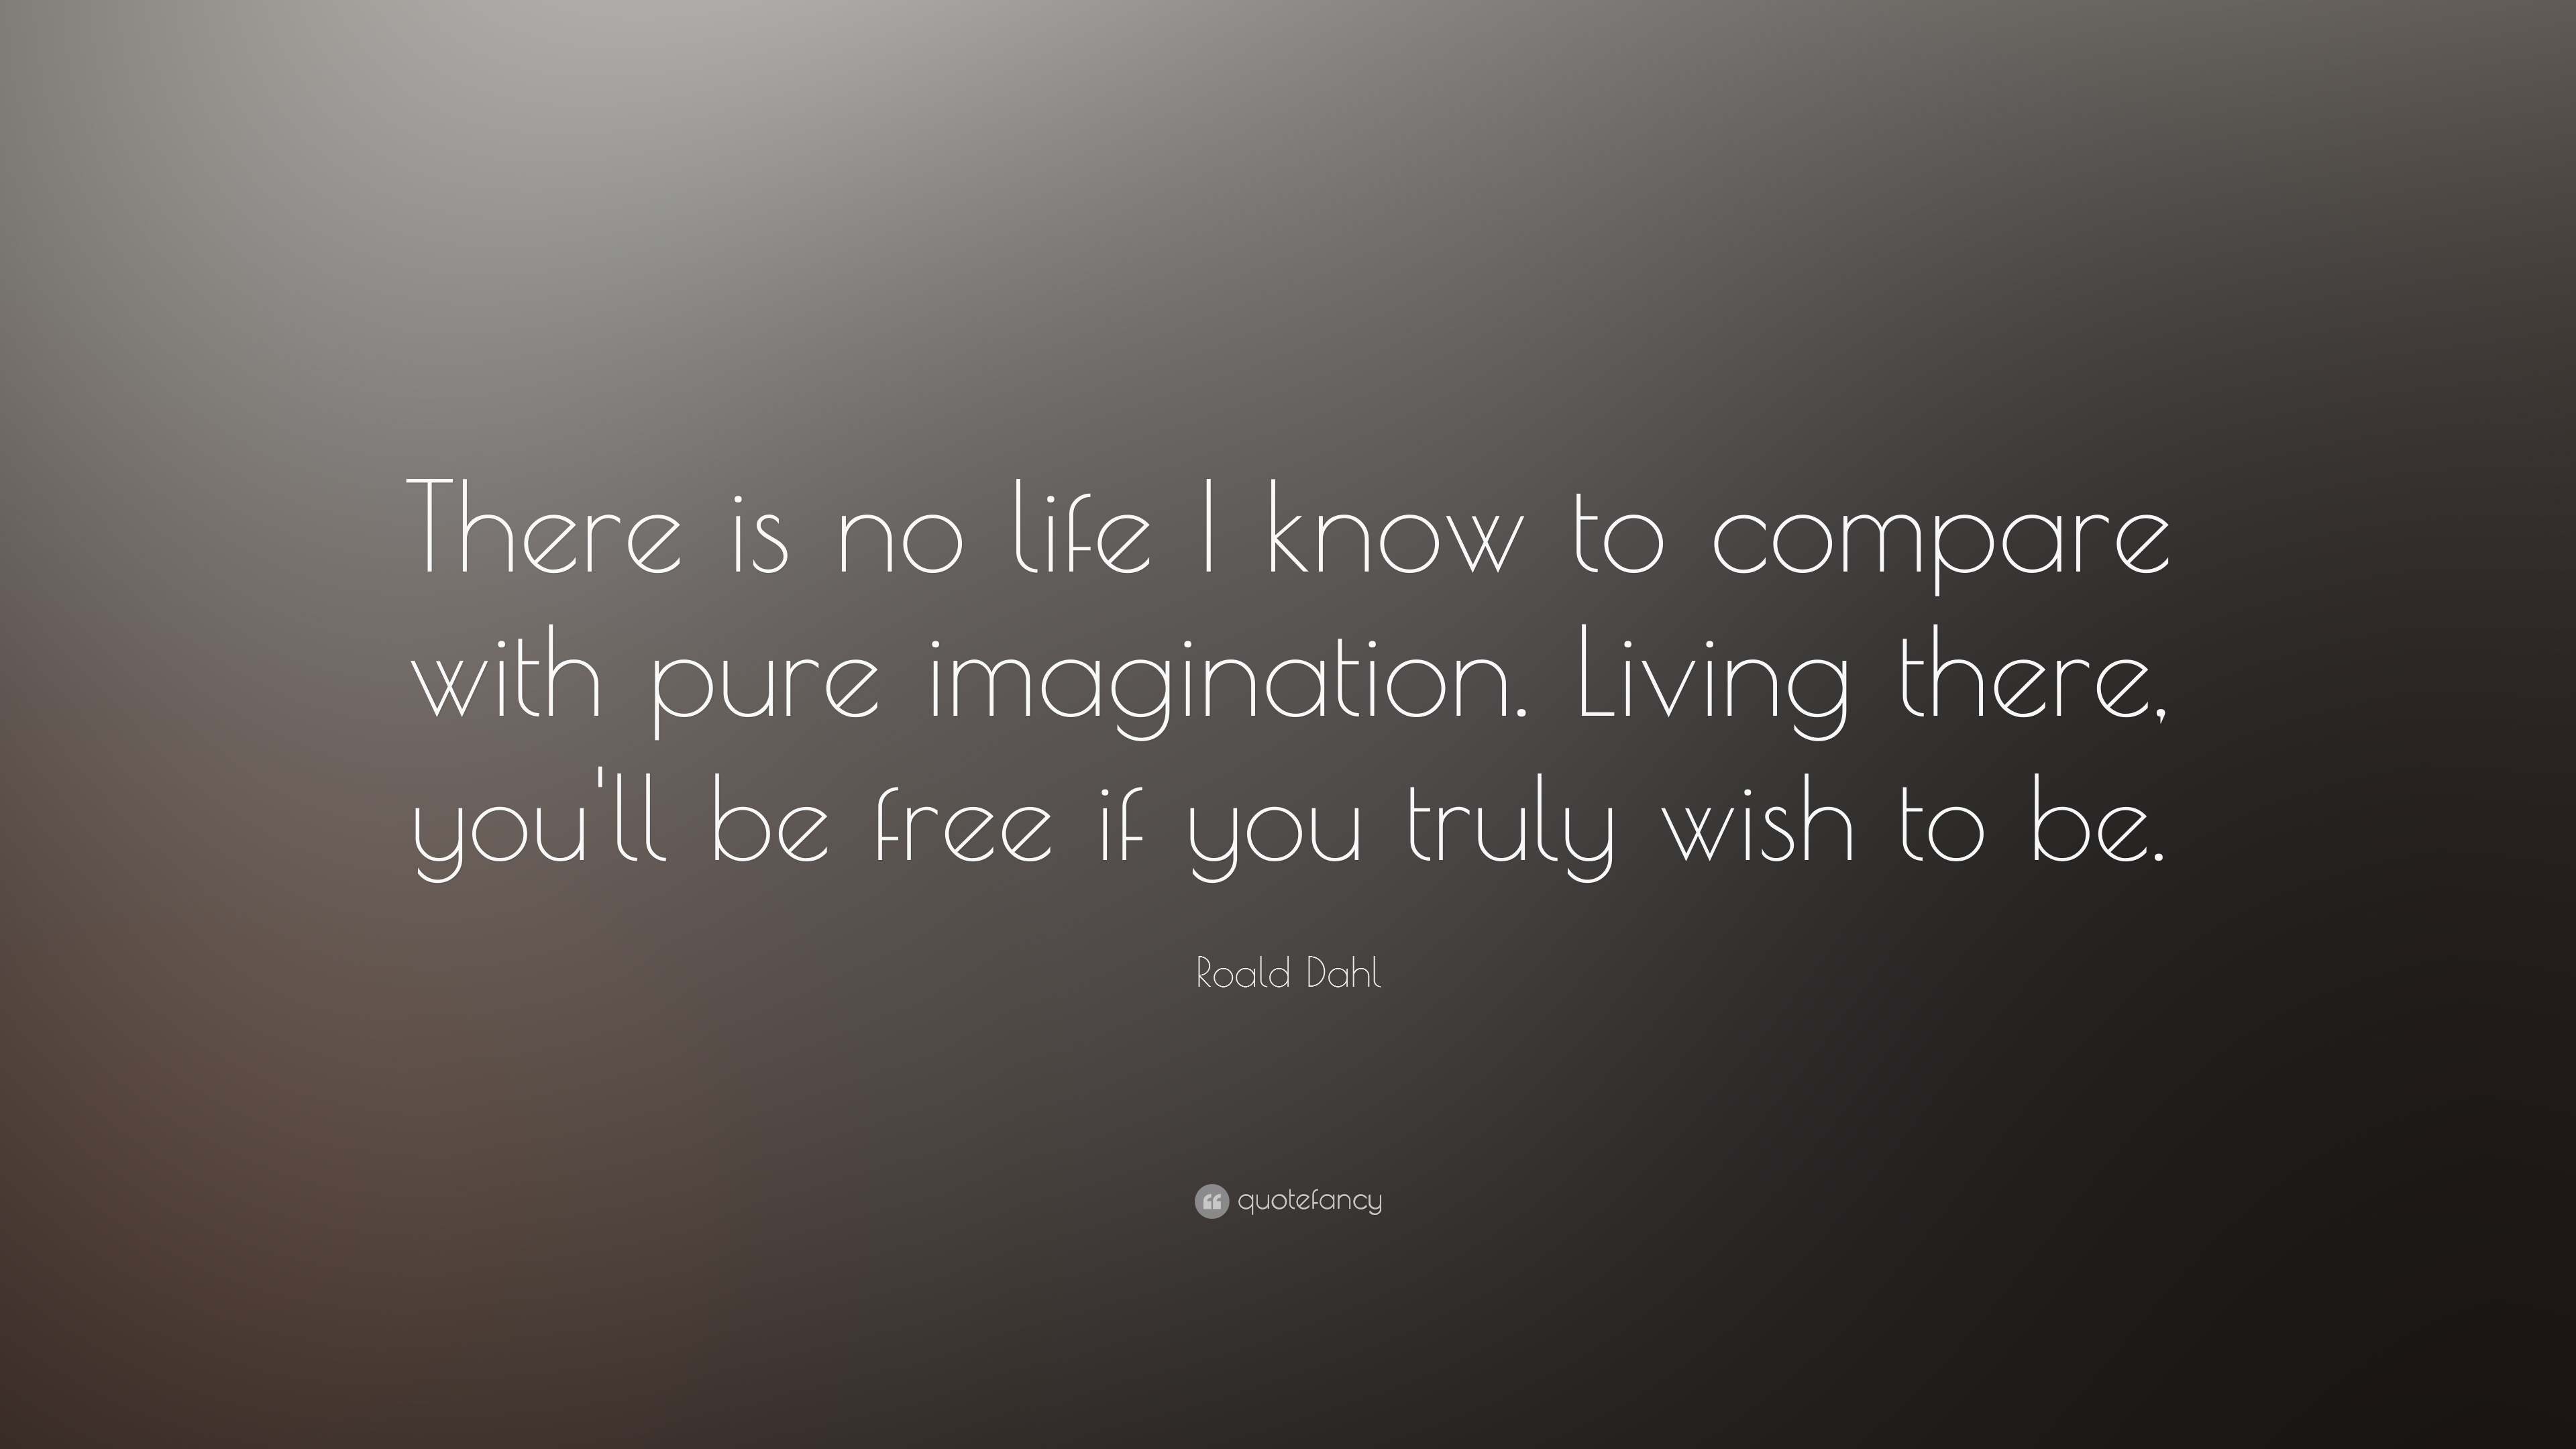 Roald Dahl Quotes Wallpaper Roald Dahl Quote There Is No Life I Know To Compare With